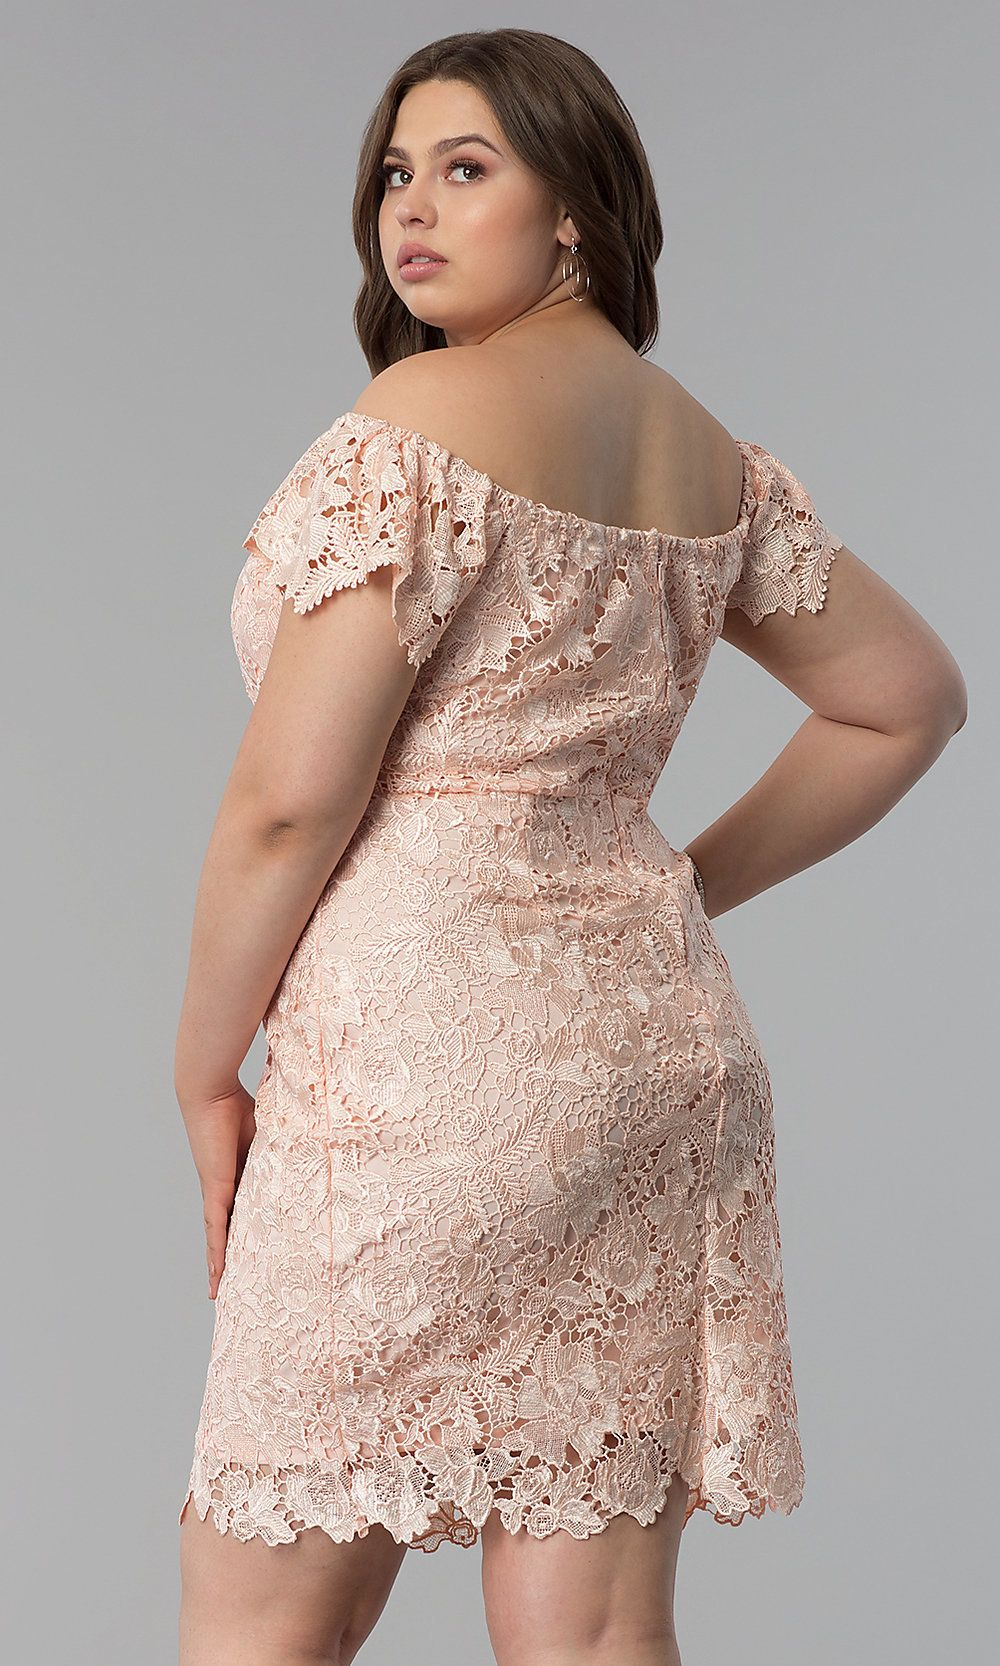 50+ Off the shoulder high low wedding guest dresses ideas in 2021